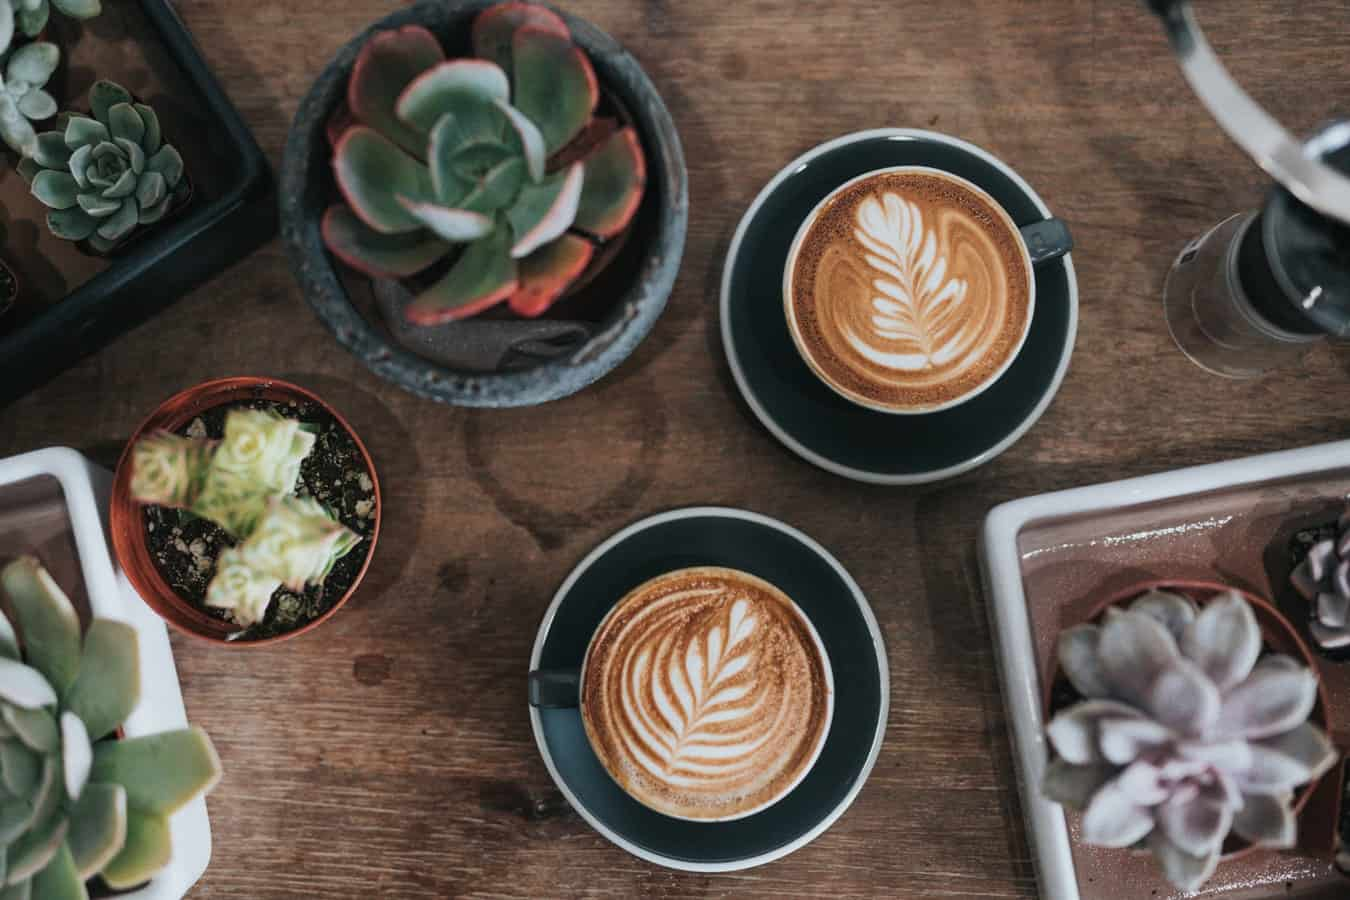 Two cups of coffee on a dark wooden table surrounded by succulents